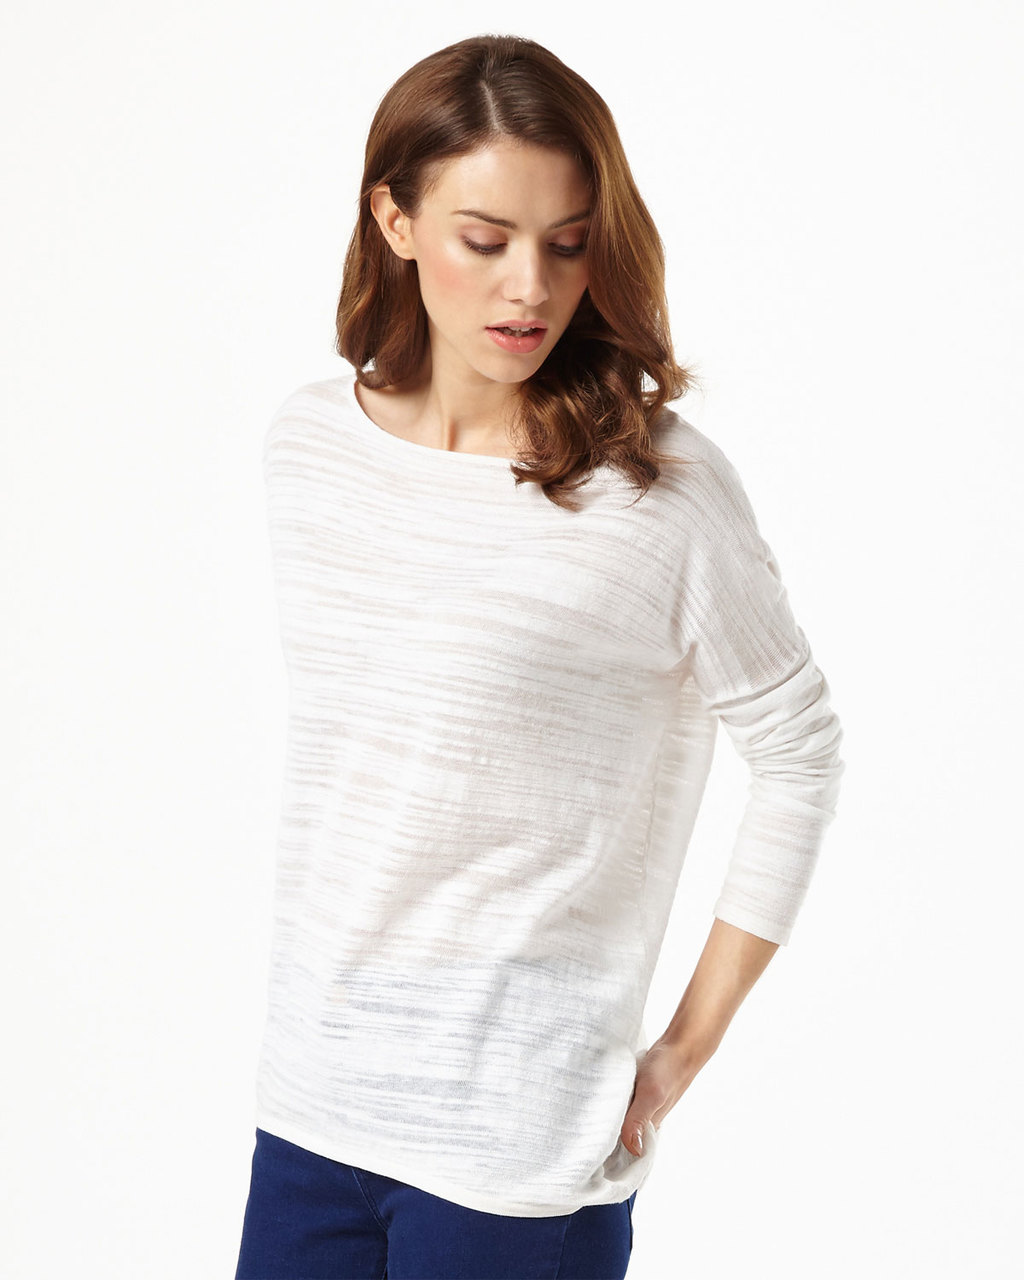 Slub Elen Ellipse Jumper - pattern: plain; style: standard; predominant colour: ivory/cream; occasions: casual; length: standard; fibres: cotton - mix; fit: slim fit; neckline: crew; sleeve length: 3/4 length; sleeve style: standard; texture group: knits/crochet; pattern type: fabric; season: s/s 2016; wardrobe: basic